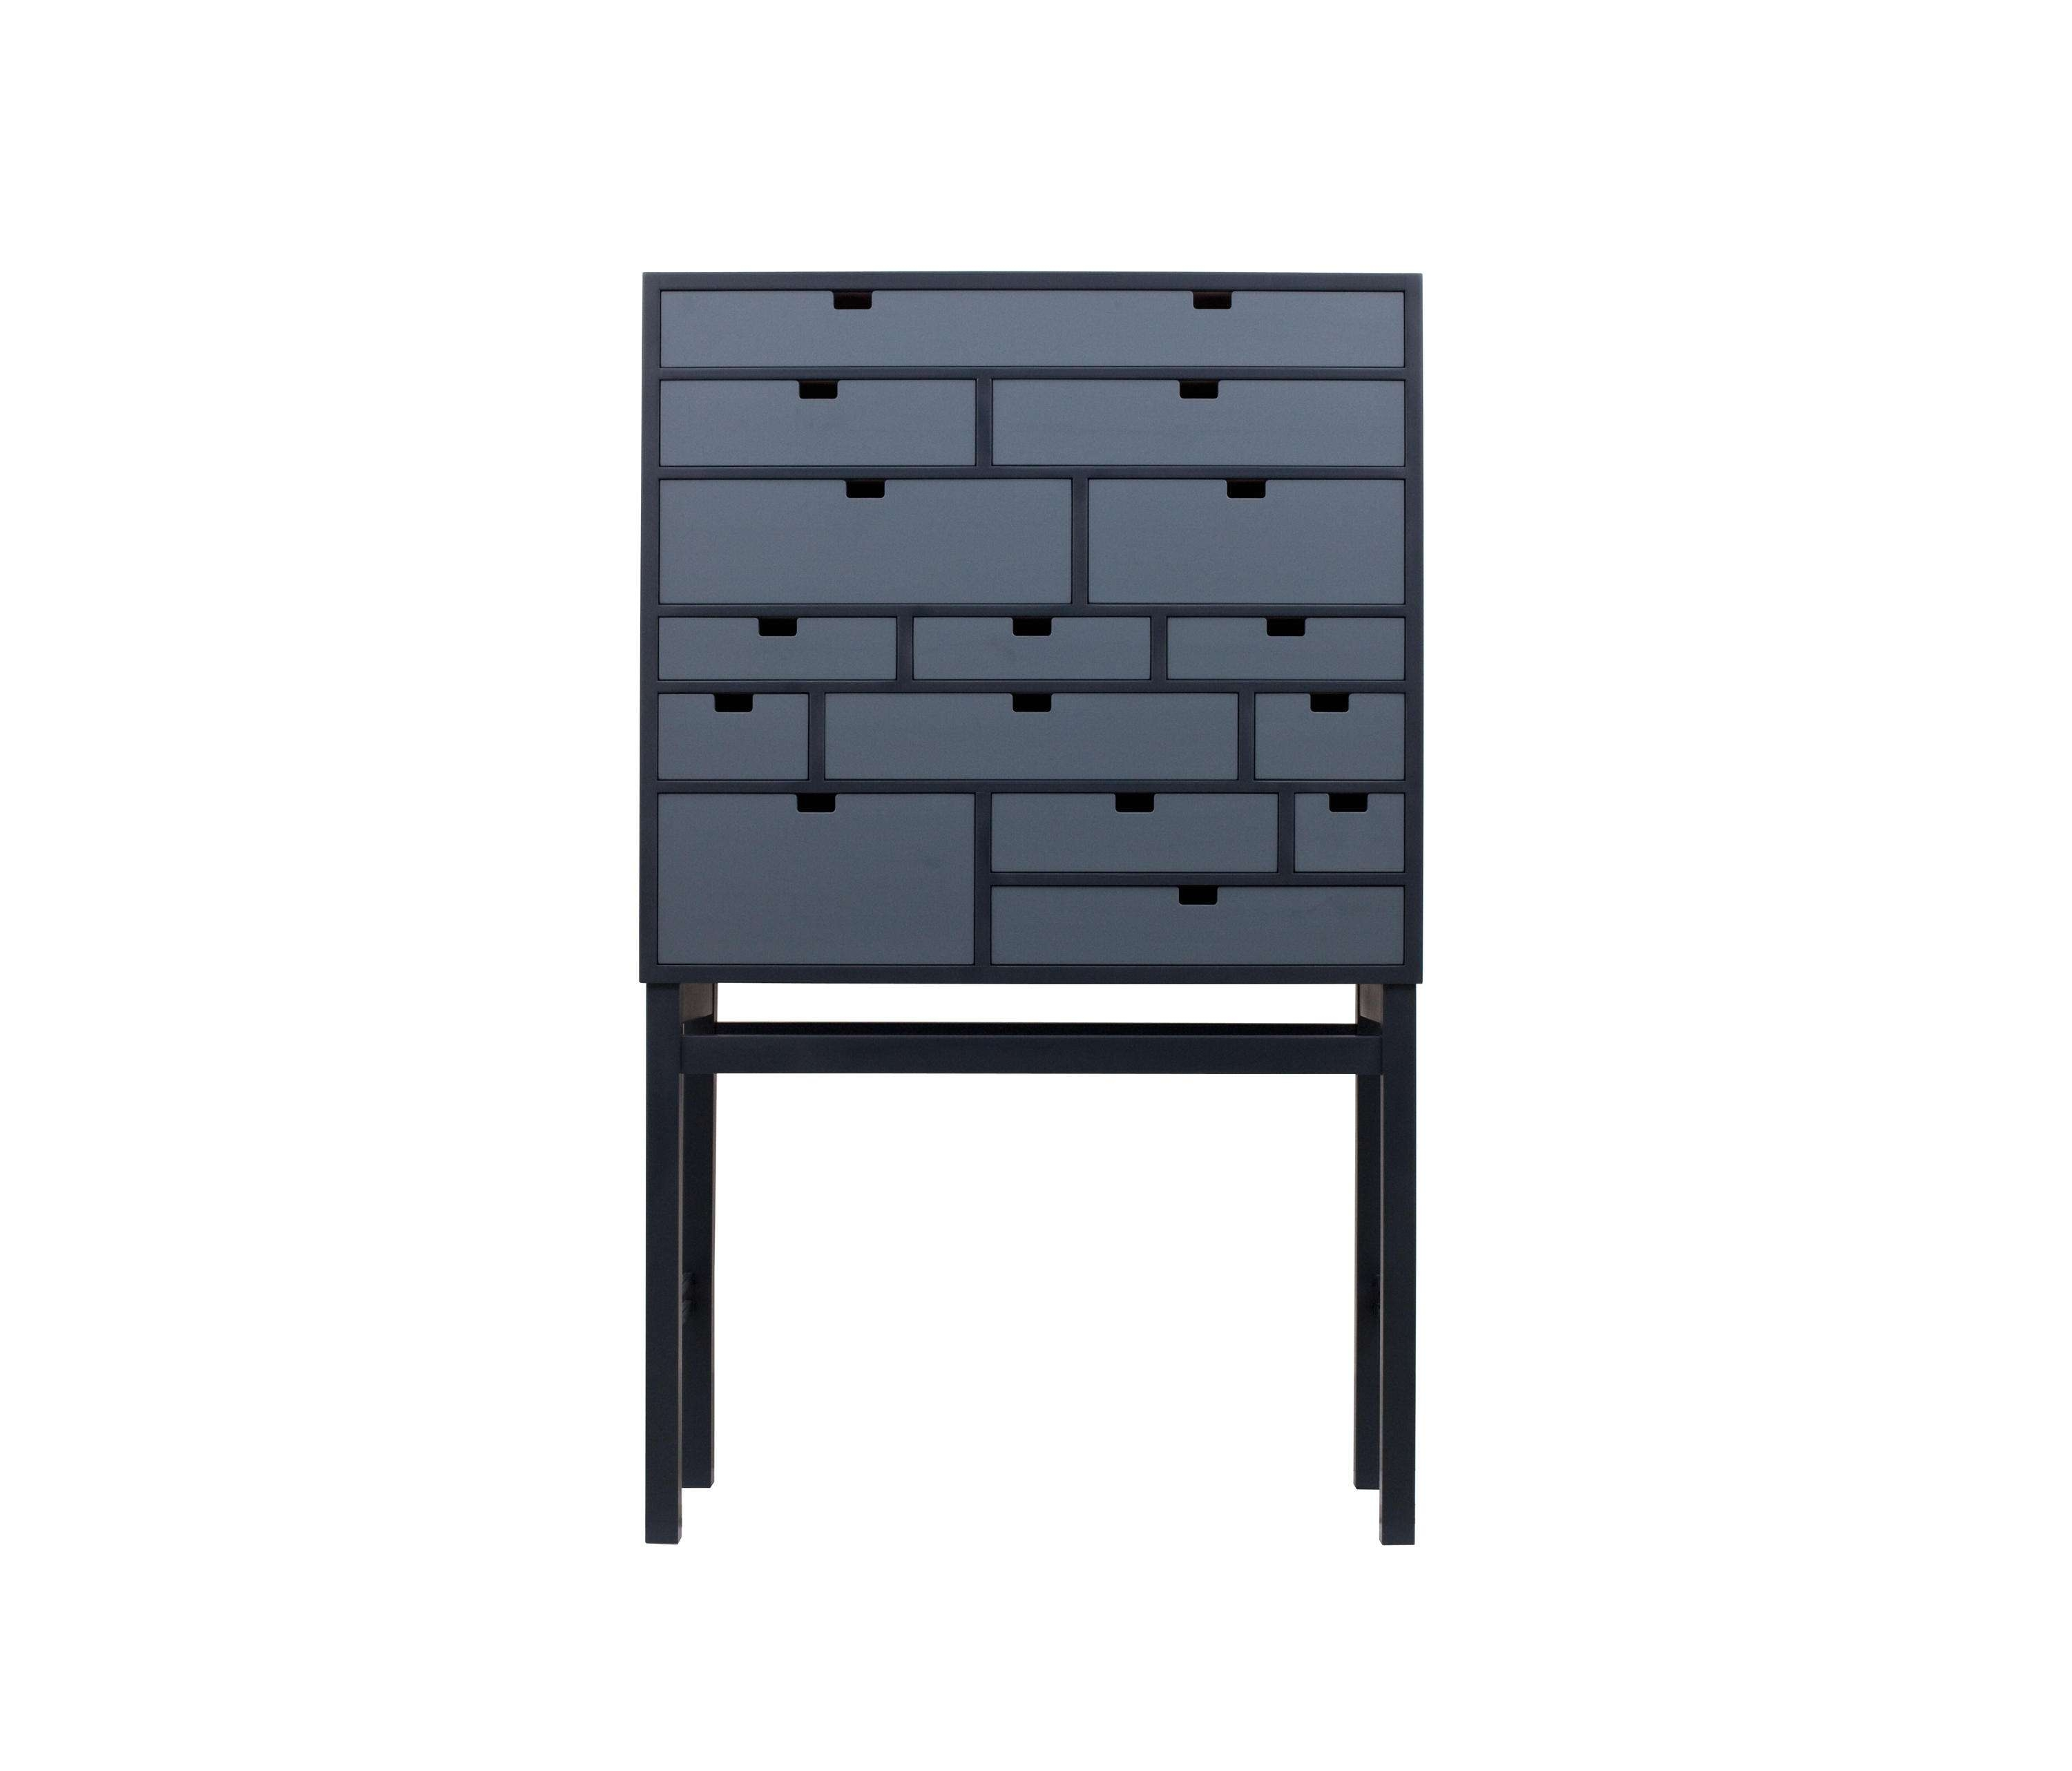 Rhapsody Chest Of Drawers – Sideboards From Olby Design | Architonic With Regard To Montana Sideboards (View 16 of 20)